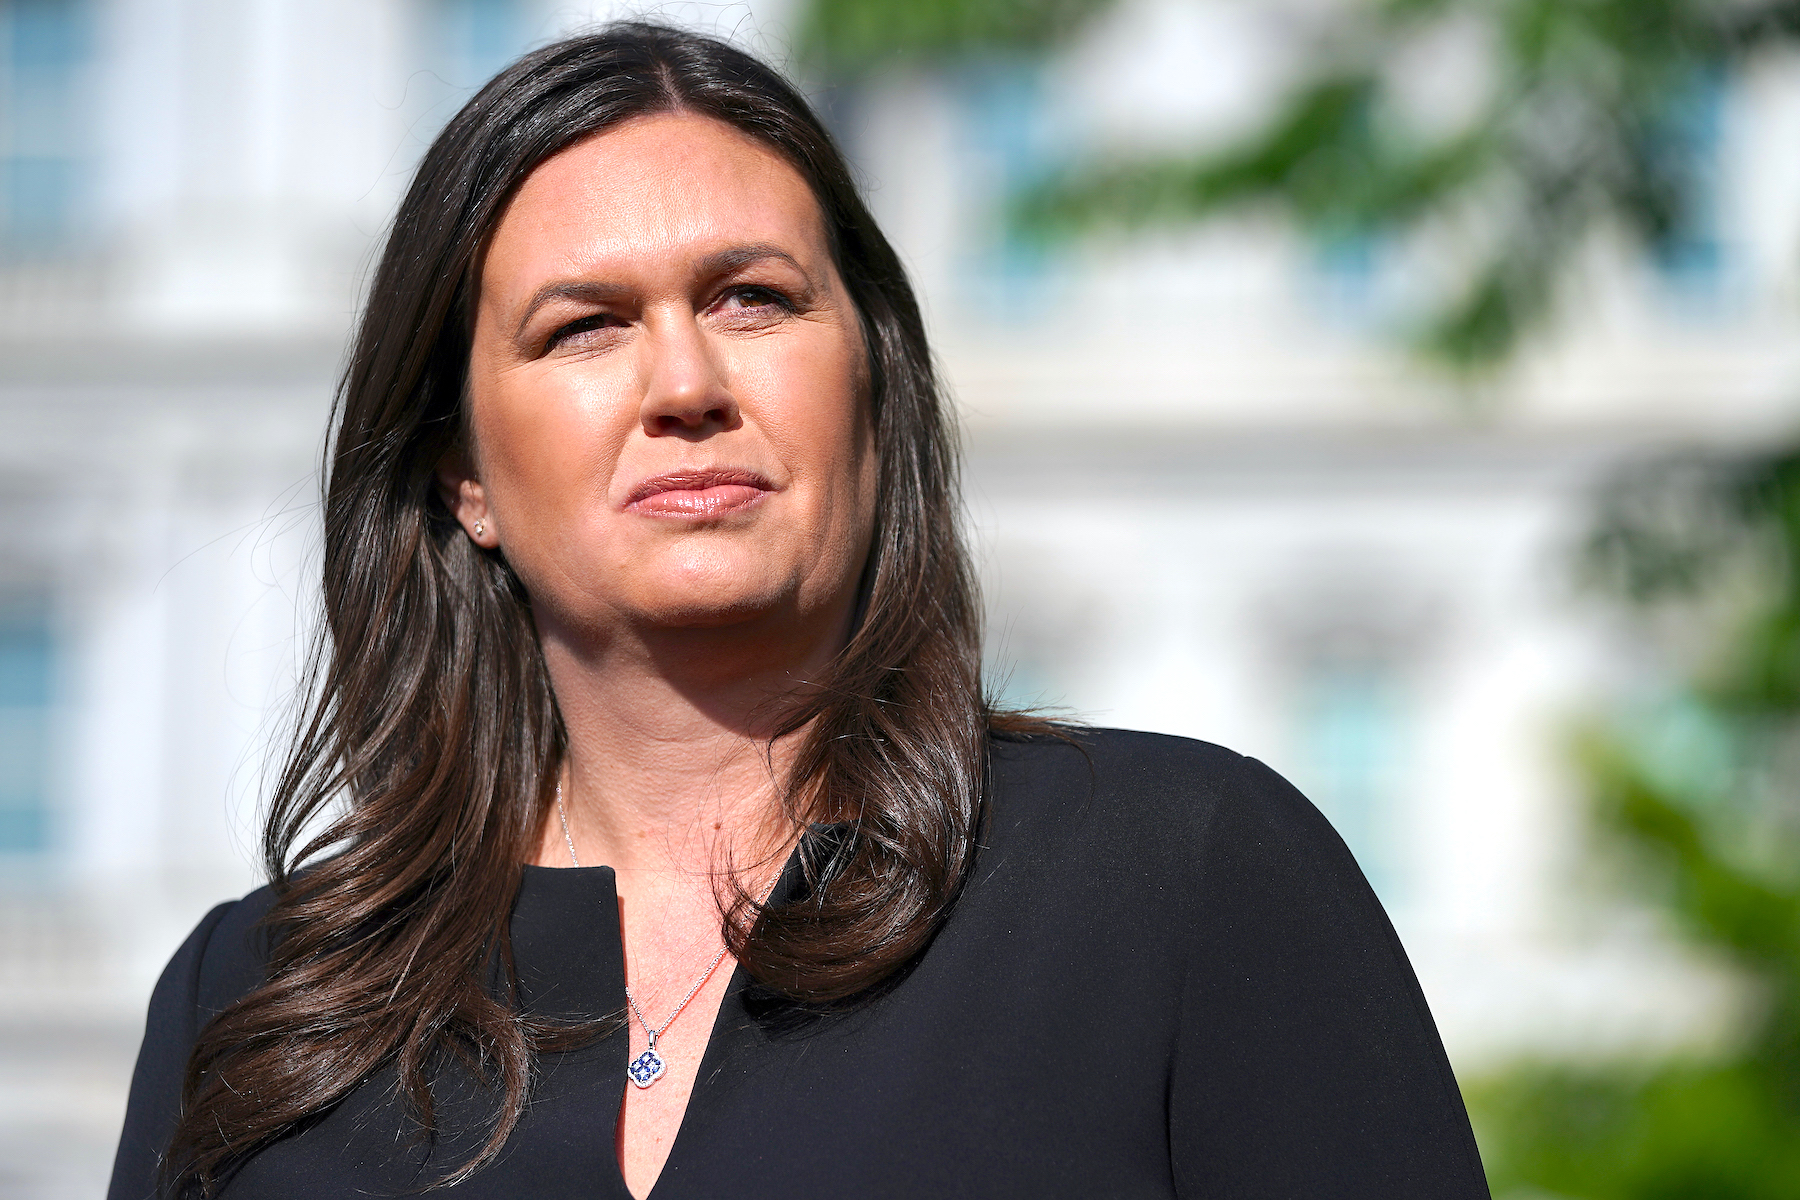 Sarah Sanders: Trump Made the Right Decision in 'Incredibly Difficult' Syria Situation